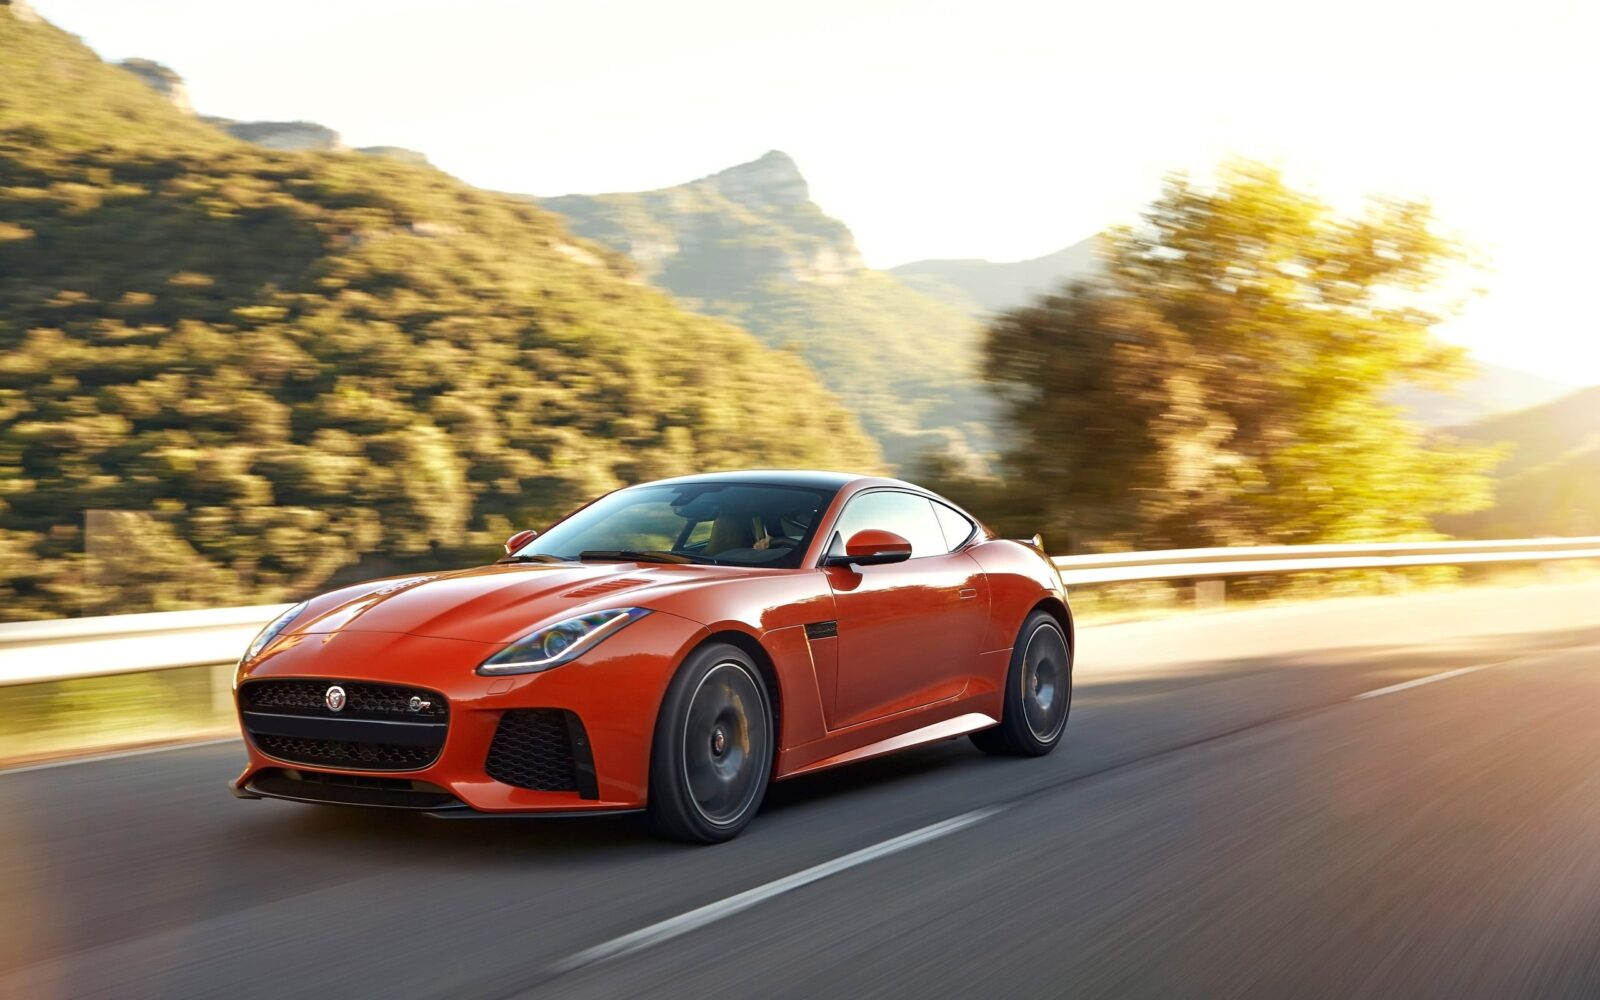 Amazing 2017 Jaguar F Type SVR Coupe picture